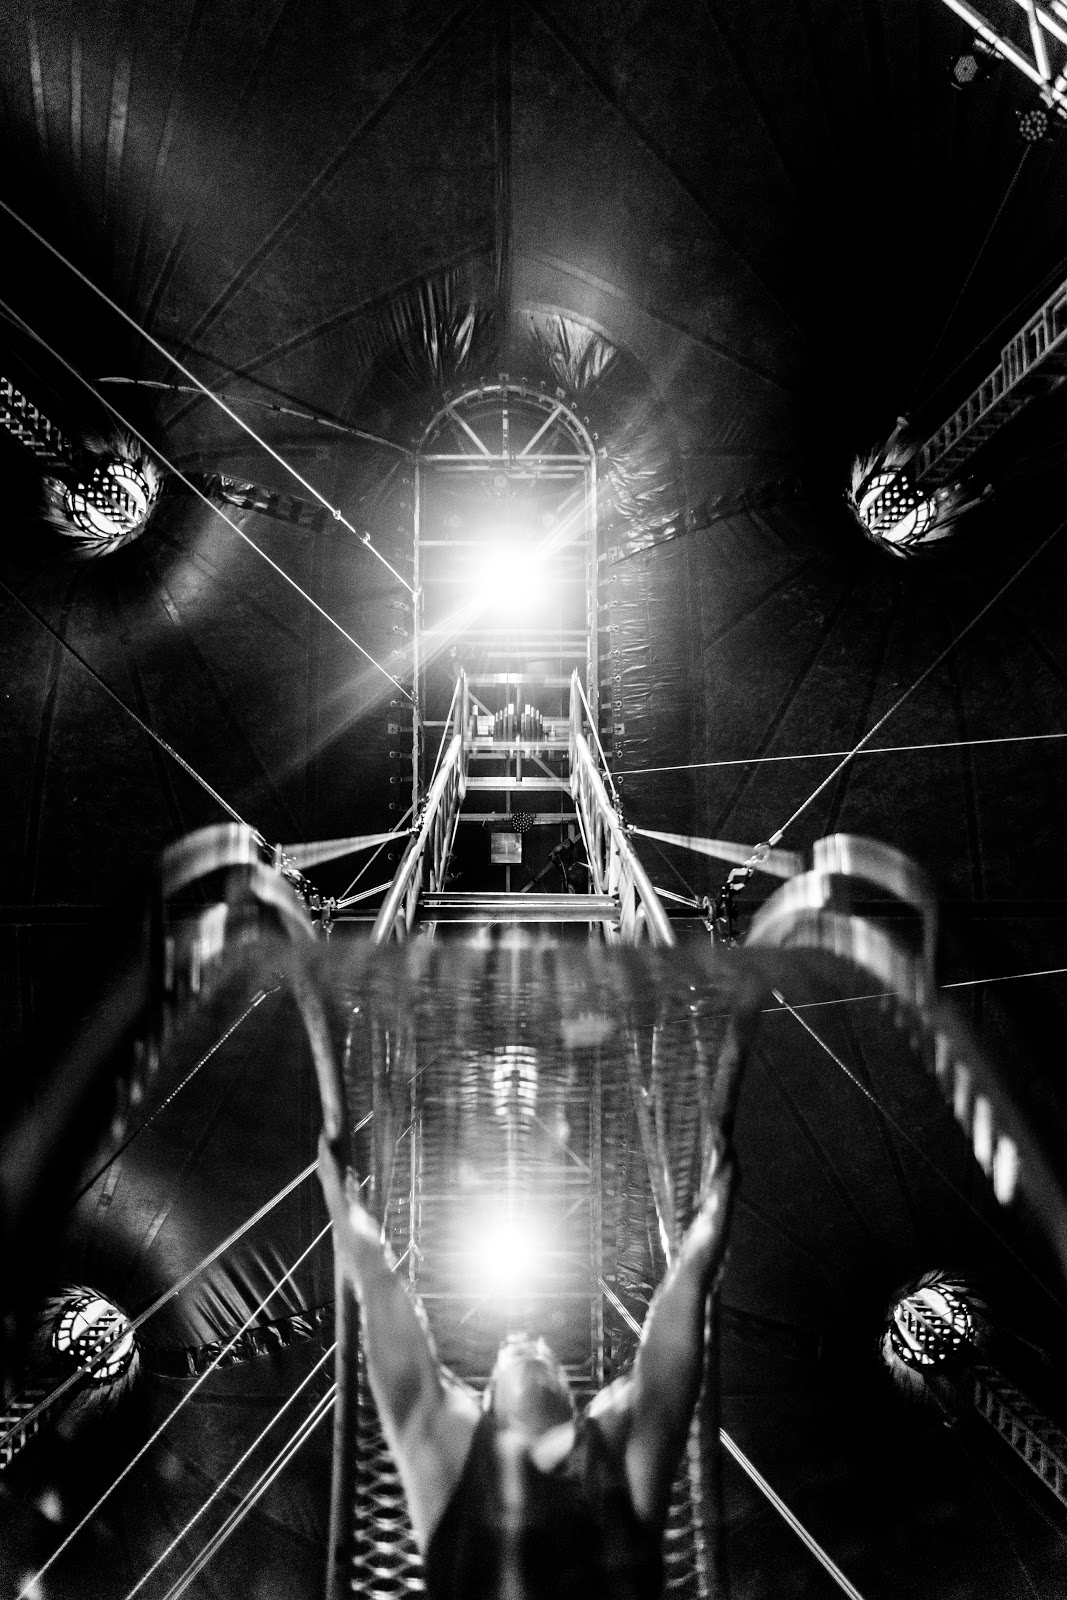 A man is holding on the the circus apparatus called the Wheel of Death. The camera angle is from underneath the device.